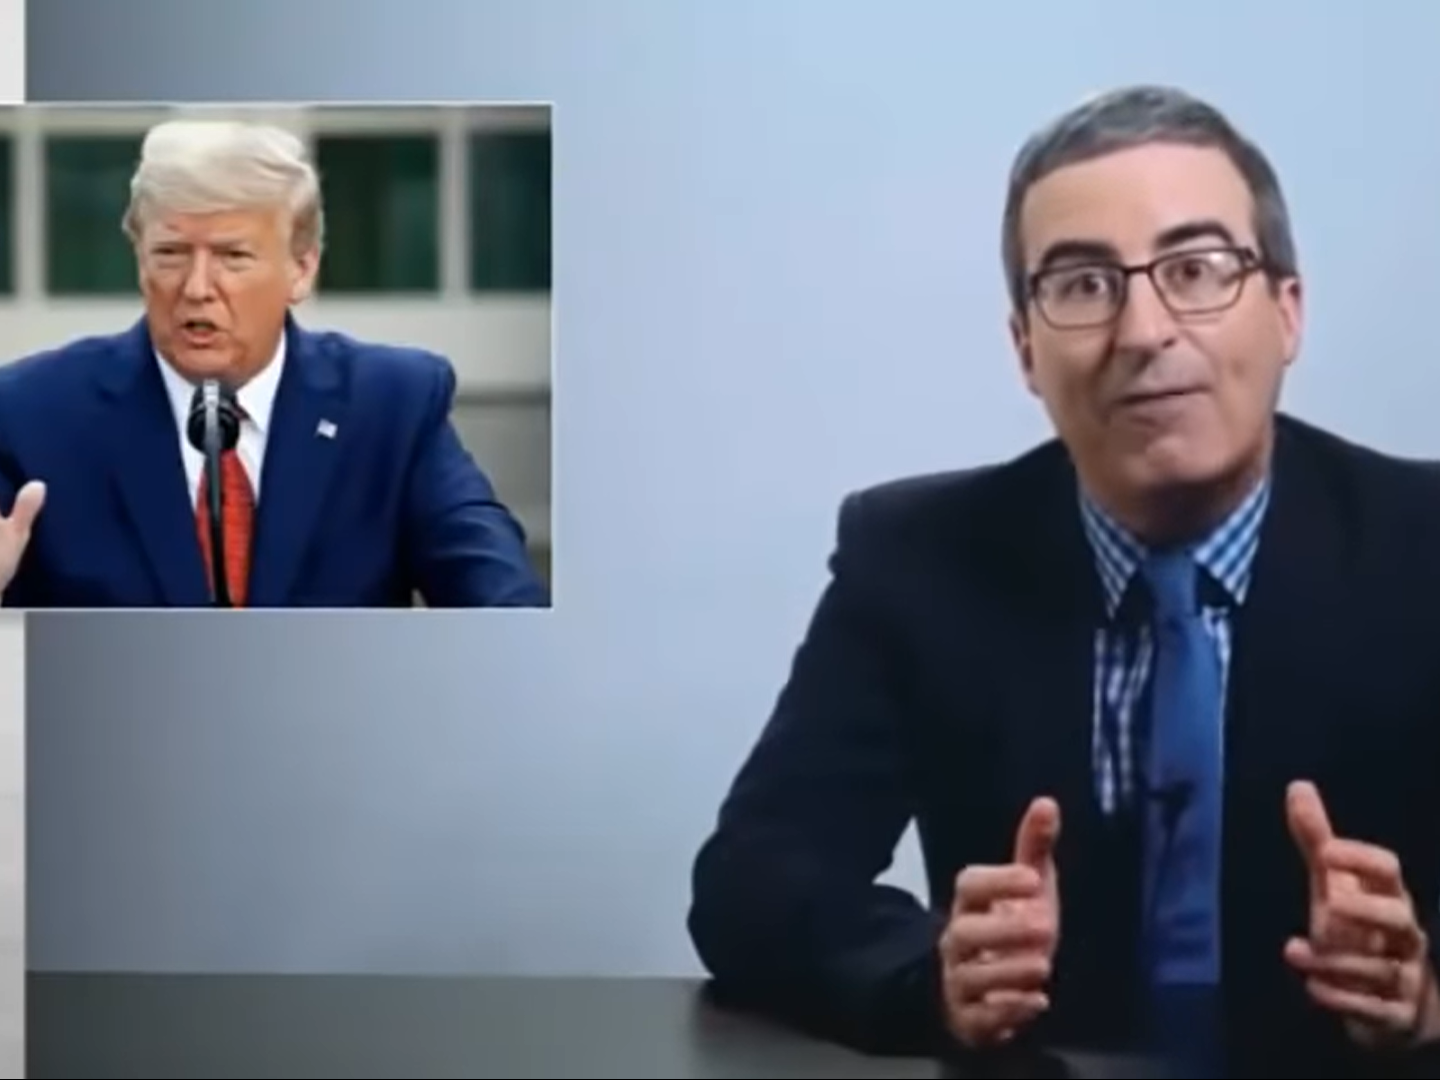 John Oliver calls out 'indescribable' Trump over 9/11 lie